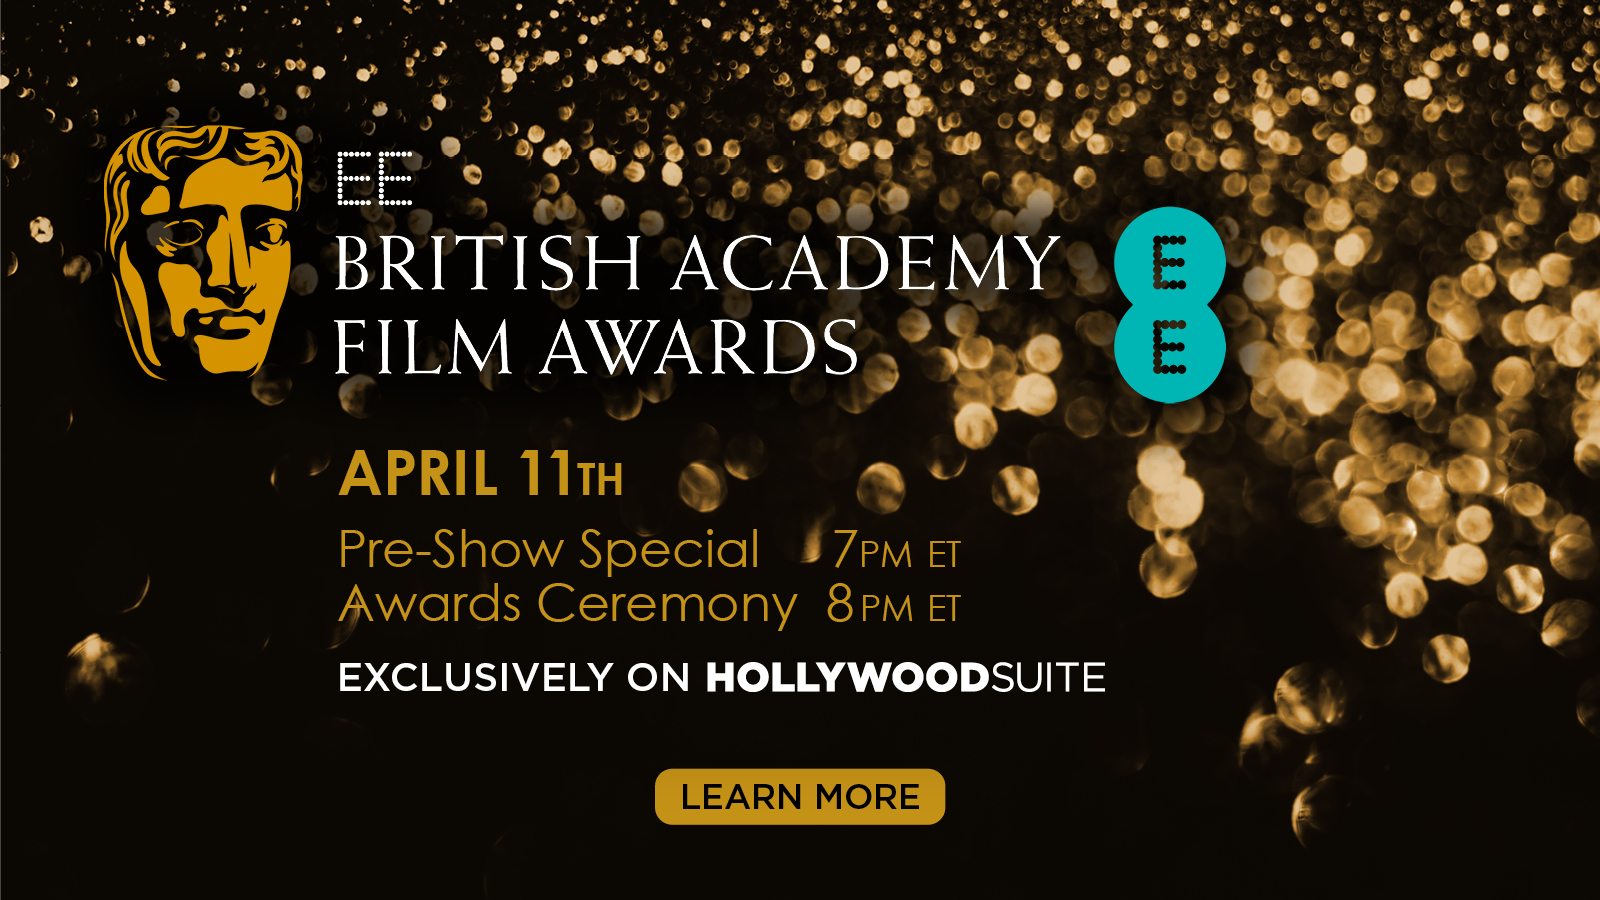 EE British Academy Film Awards – April 11 – Click to learn more